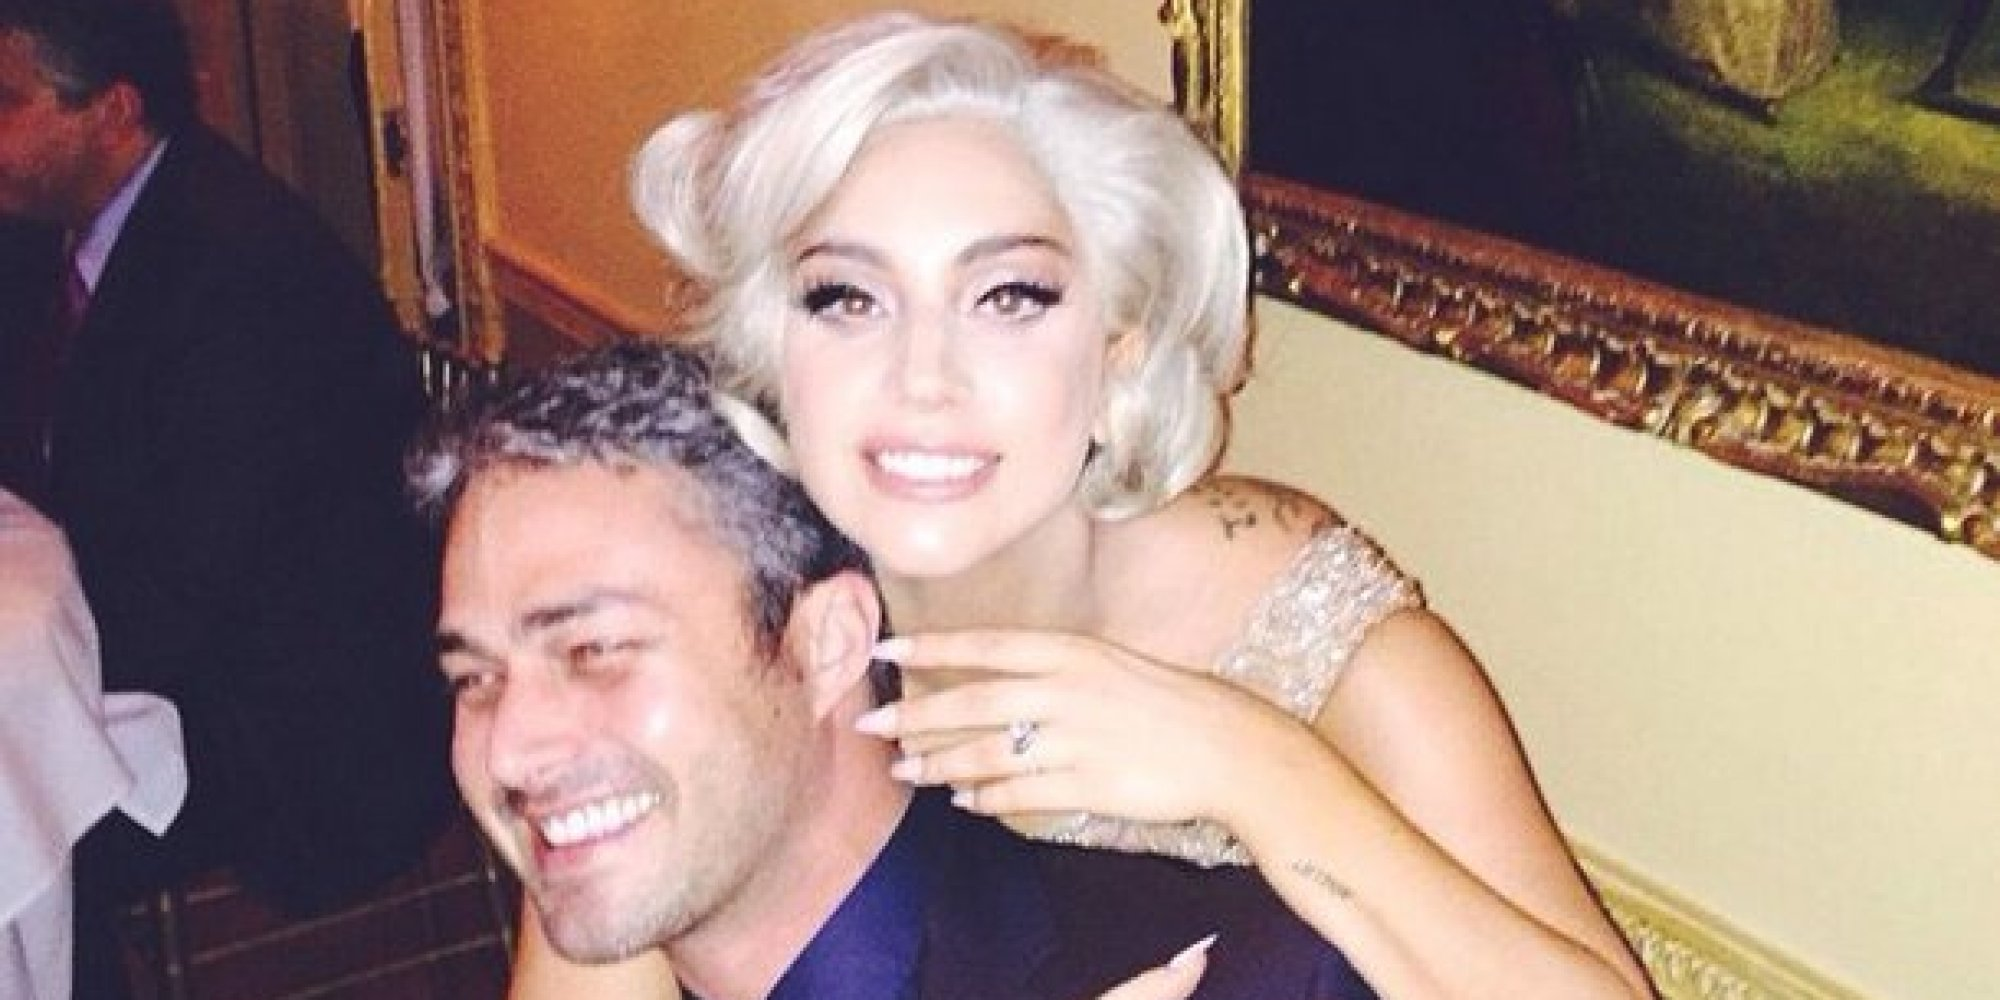 Lady Gagas Engagement Ring Has A Special Surprise On The Band